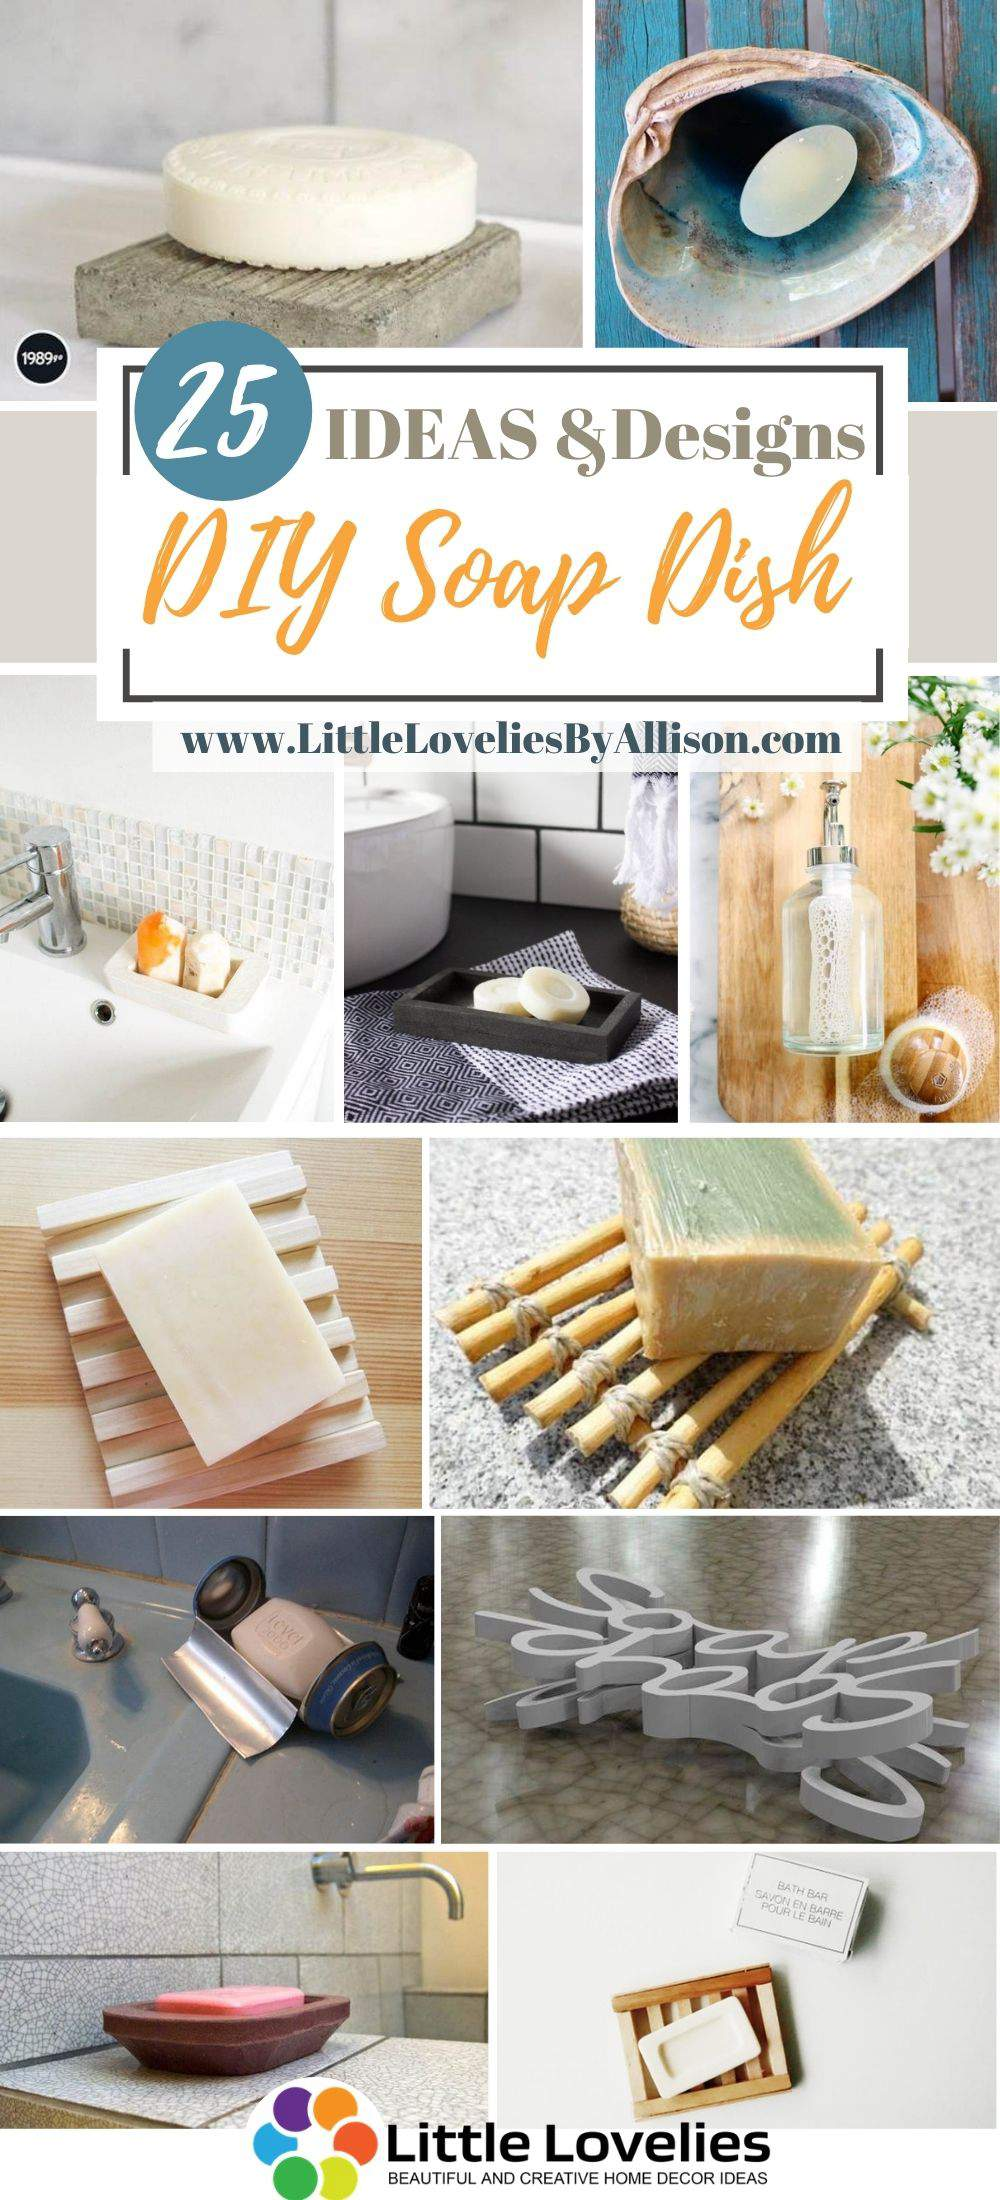 Best-DIY-Soap-Dish-Projects